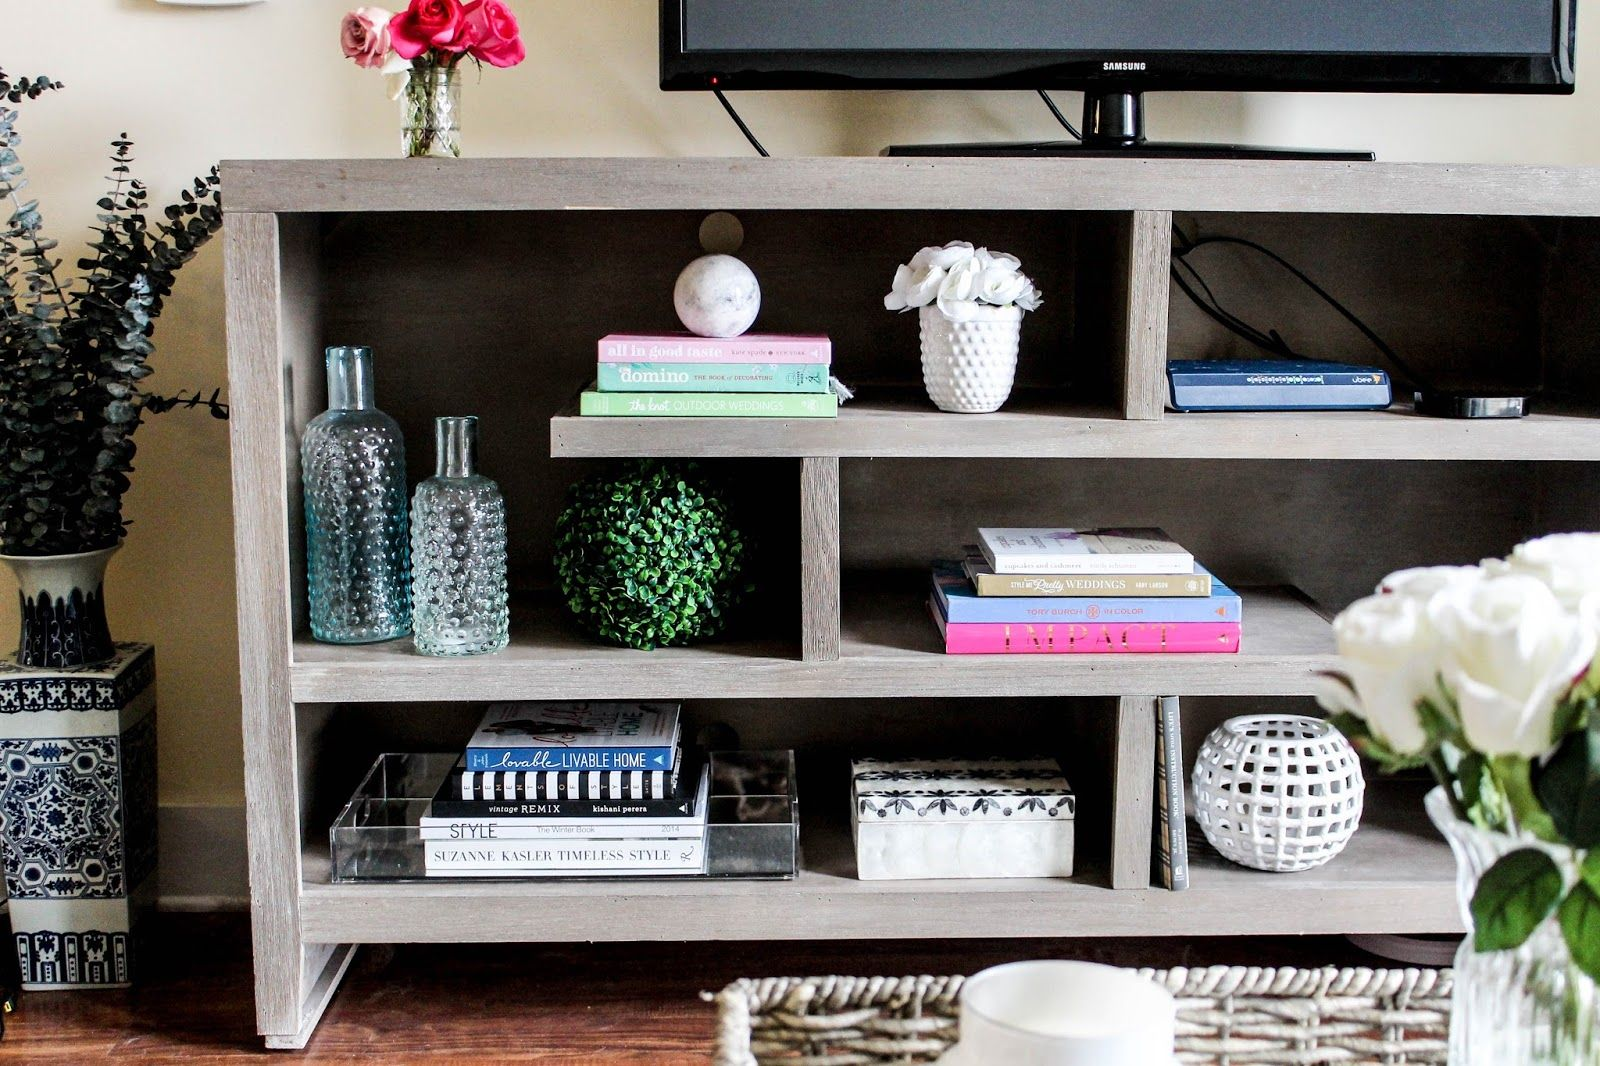 How To Style Your TV Stand or Console Table   Coffee Table Books  Vases. How To Style Your TV Stand or Console Table   Coffee Table Books